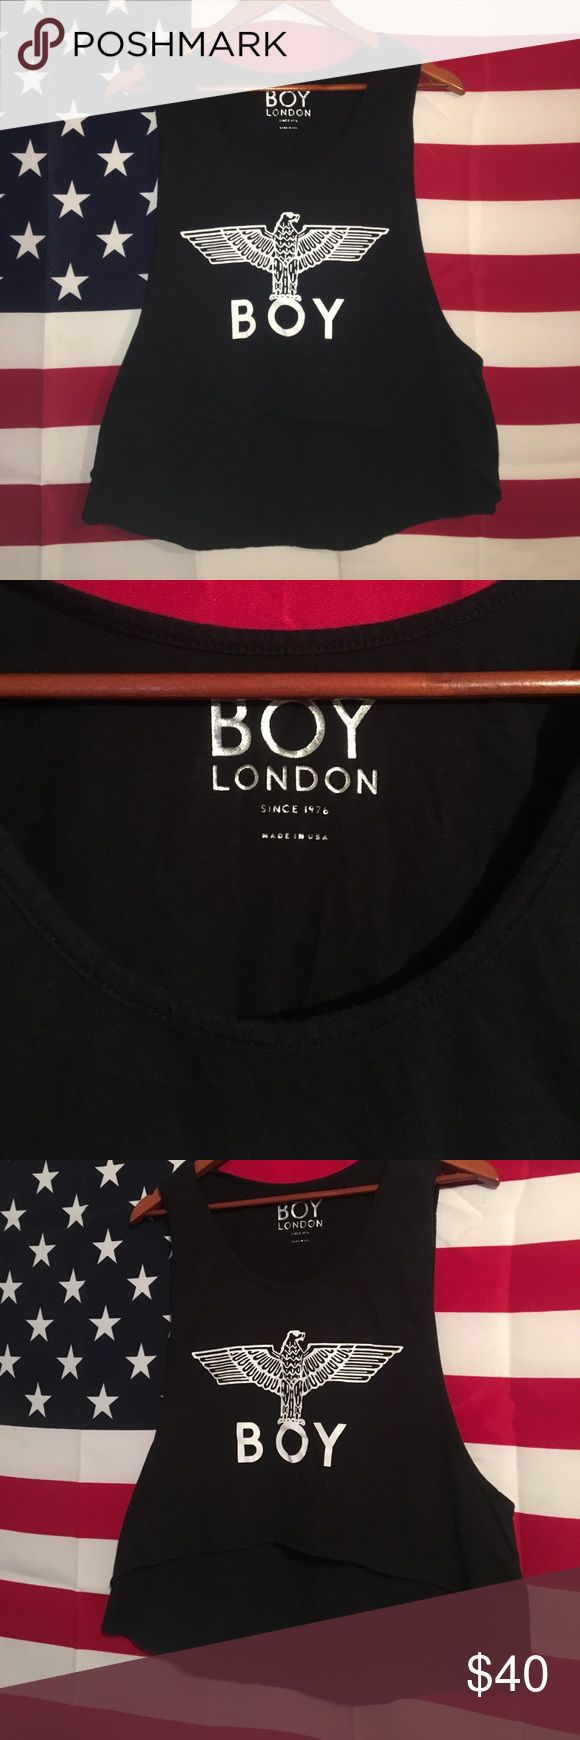 BOY LONDON Boy London Top. One size fits all UNIF Tops Muscle Tees